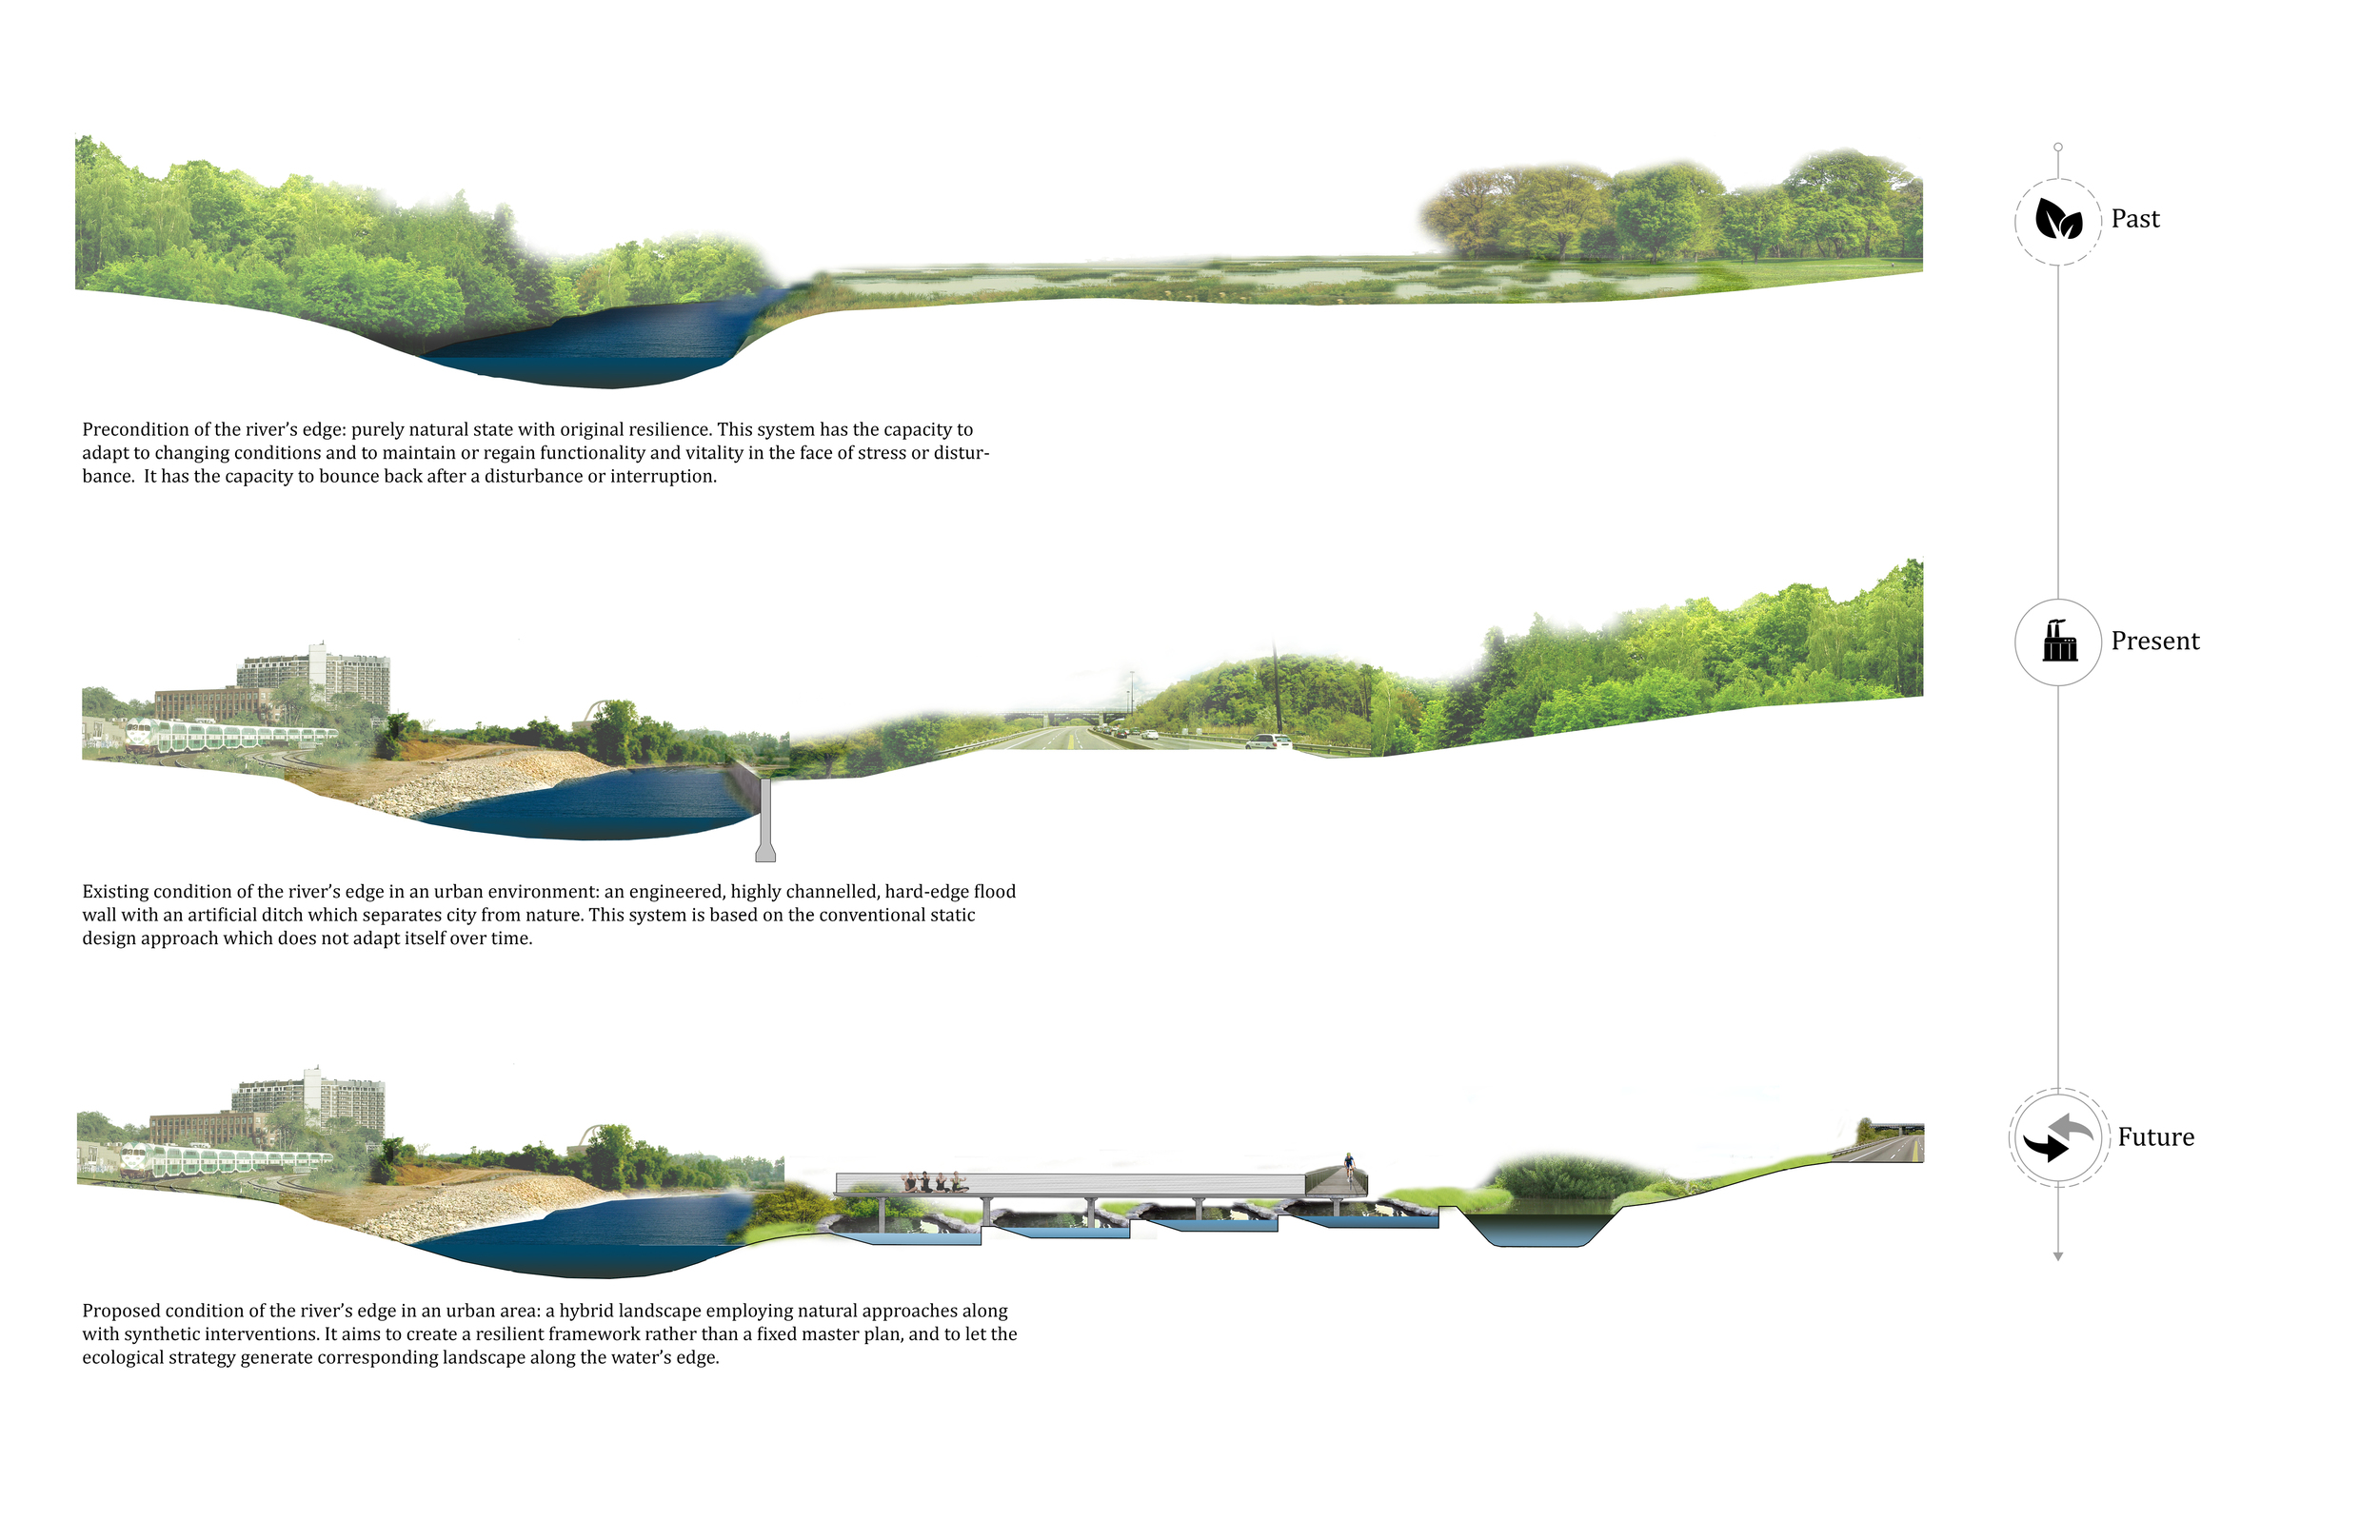 Figure 1: River's edge: precondition, existing, and proposed condition.